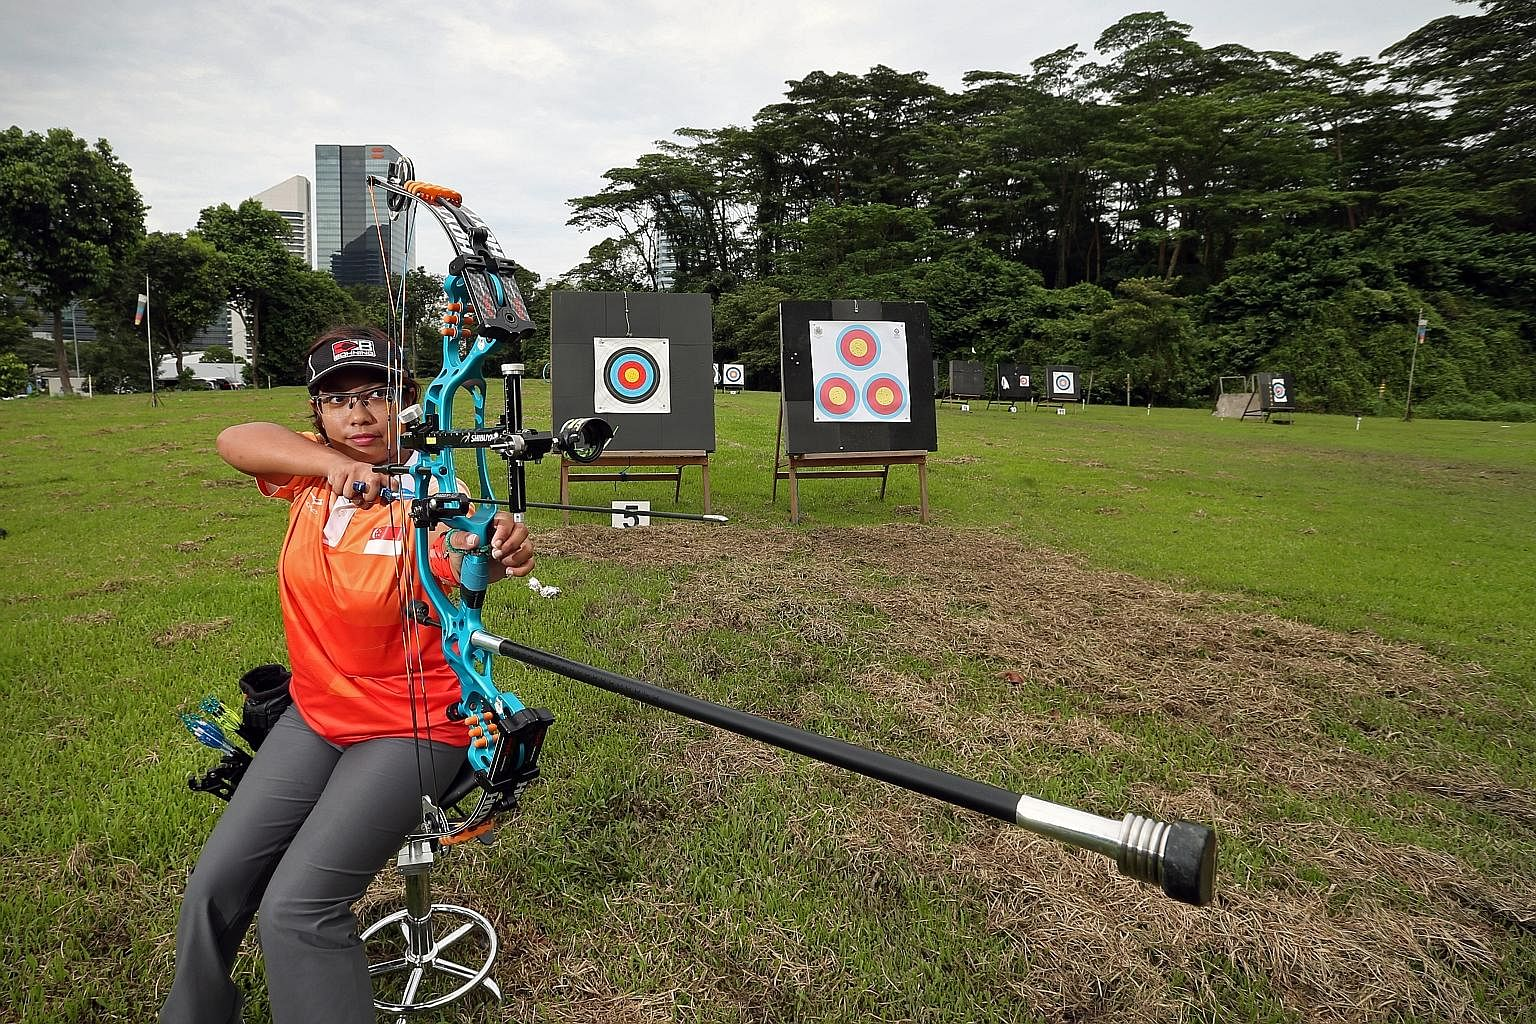 Para-archer Nur Syahidah Alim bagged two gold medals at her debut in the 2015 Asean Para Games and defended her gold at the 2017 Games. She was also the first female archer to represent Singapore at the 2016 Paralympics in Rio.